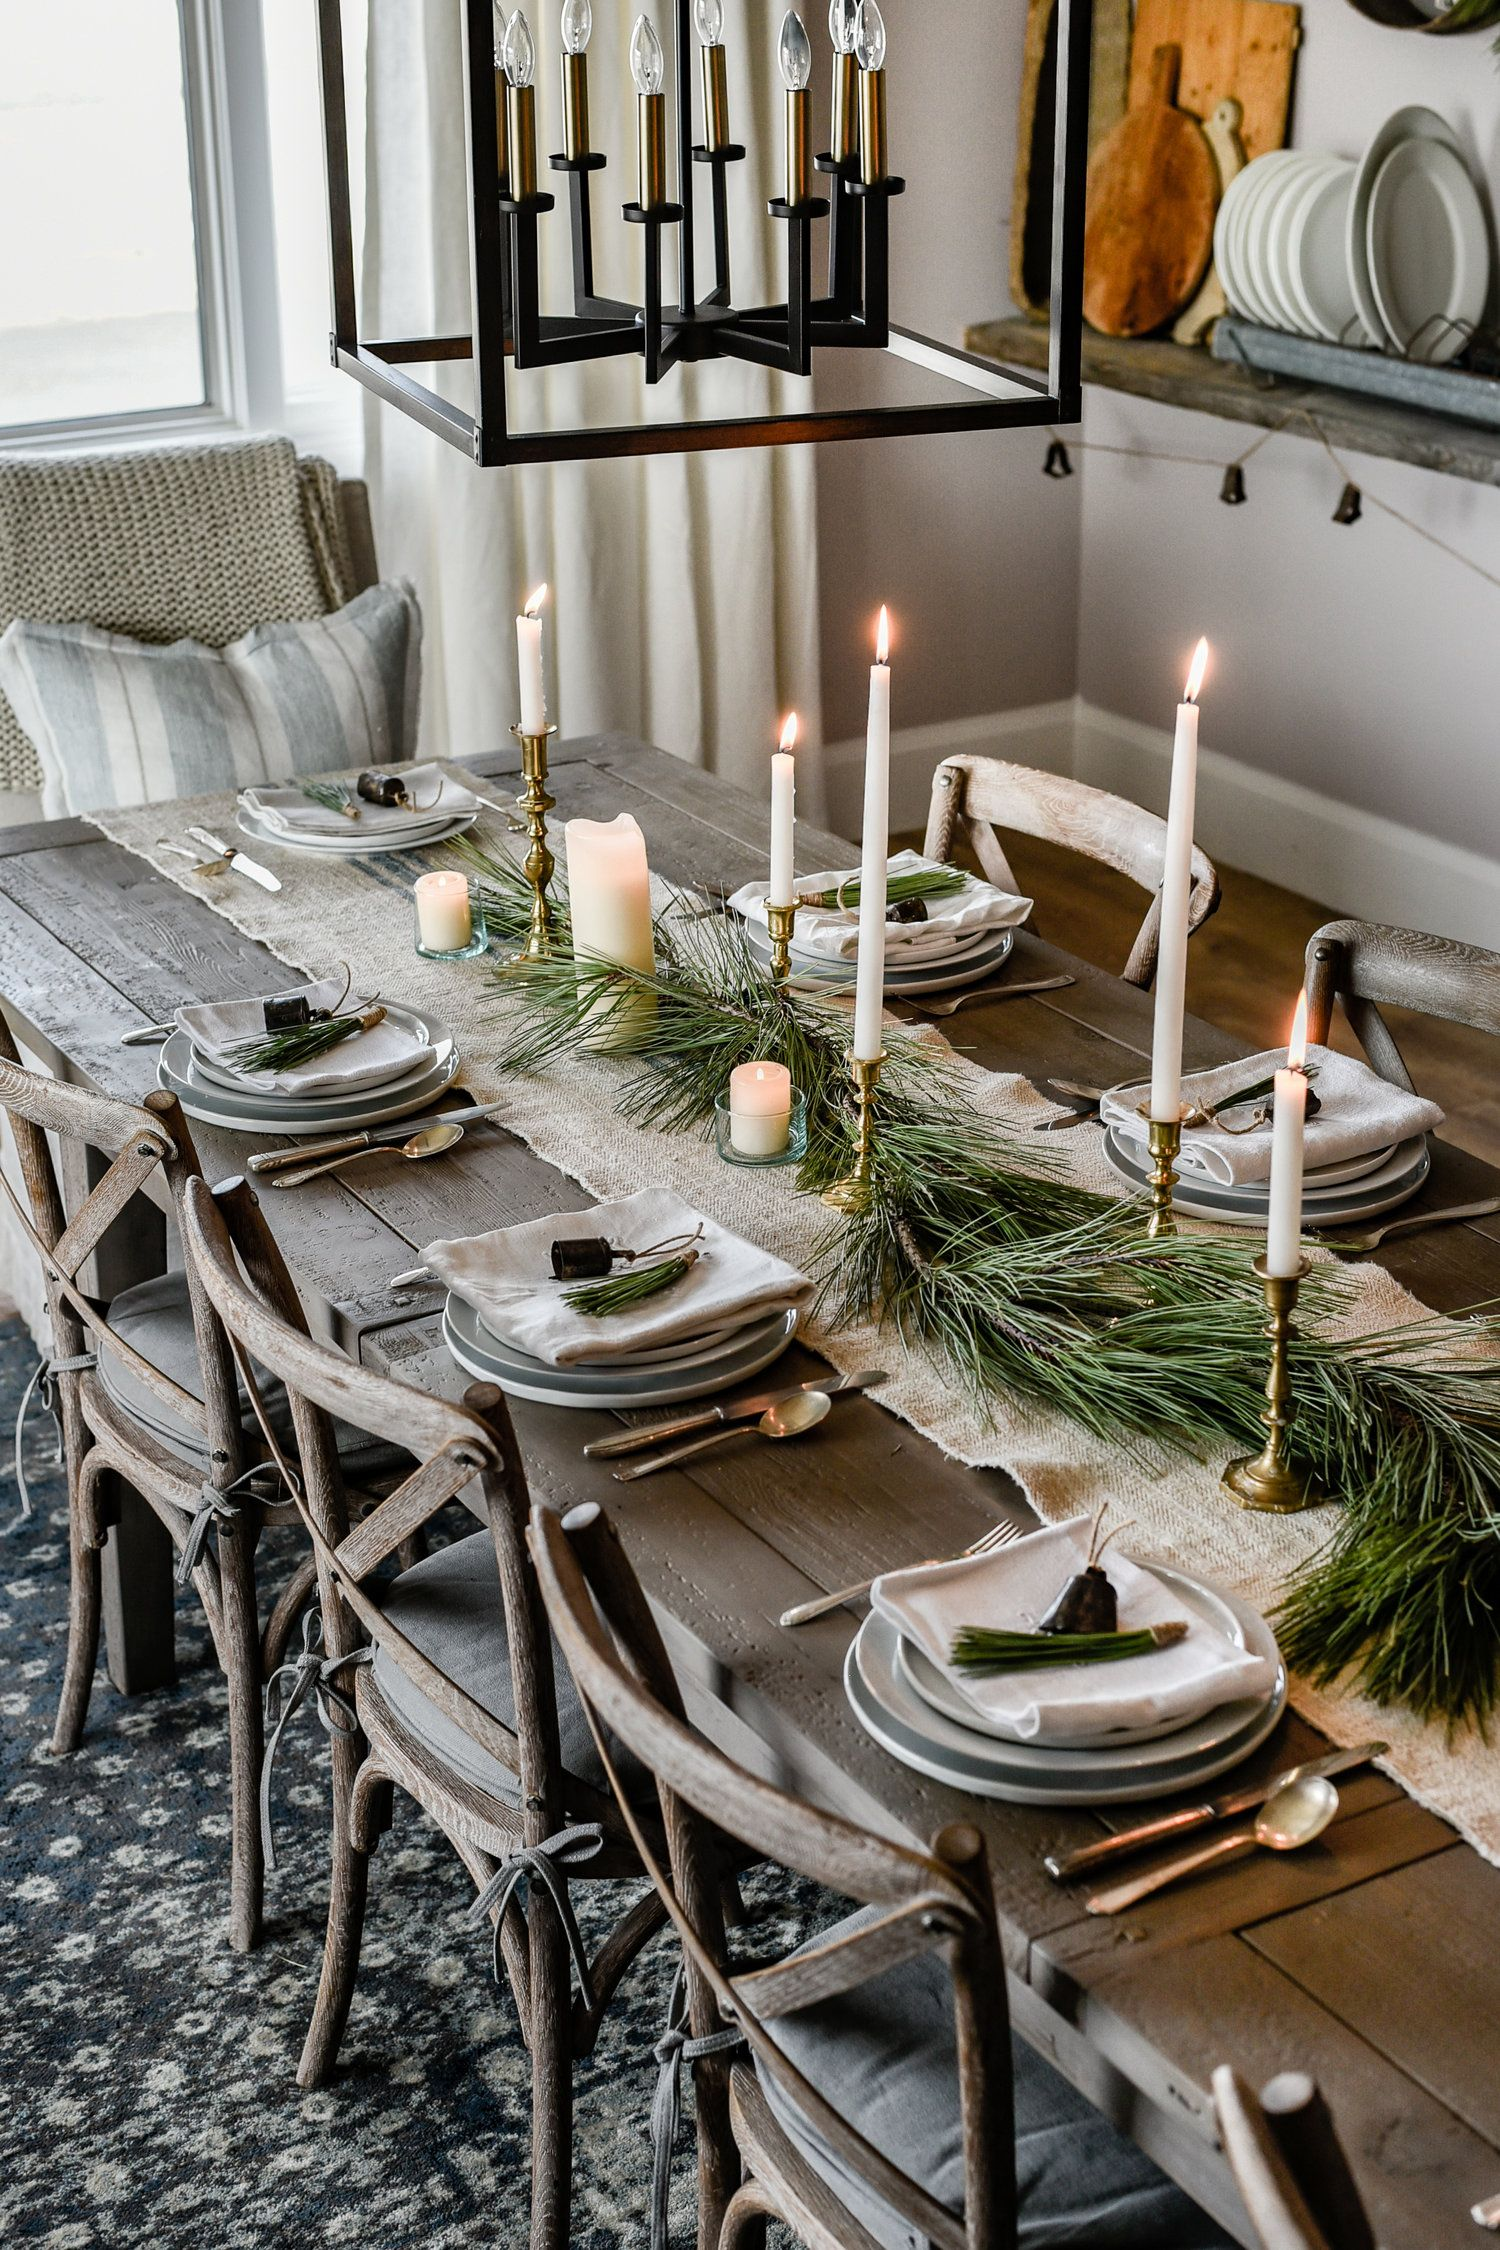 10 Beautiful Christmas Tablescapes to Inspire Your Holiday